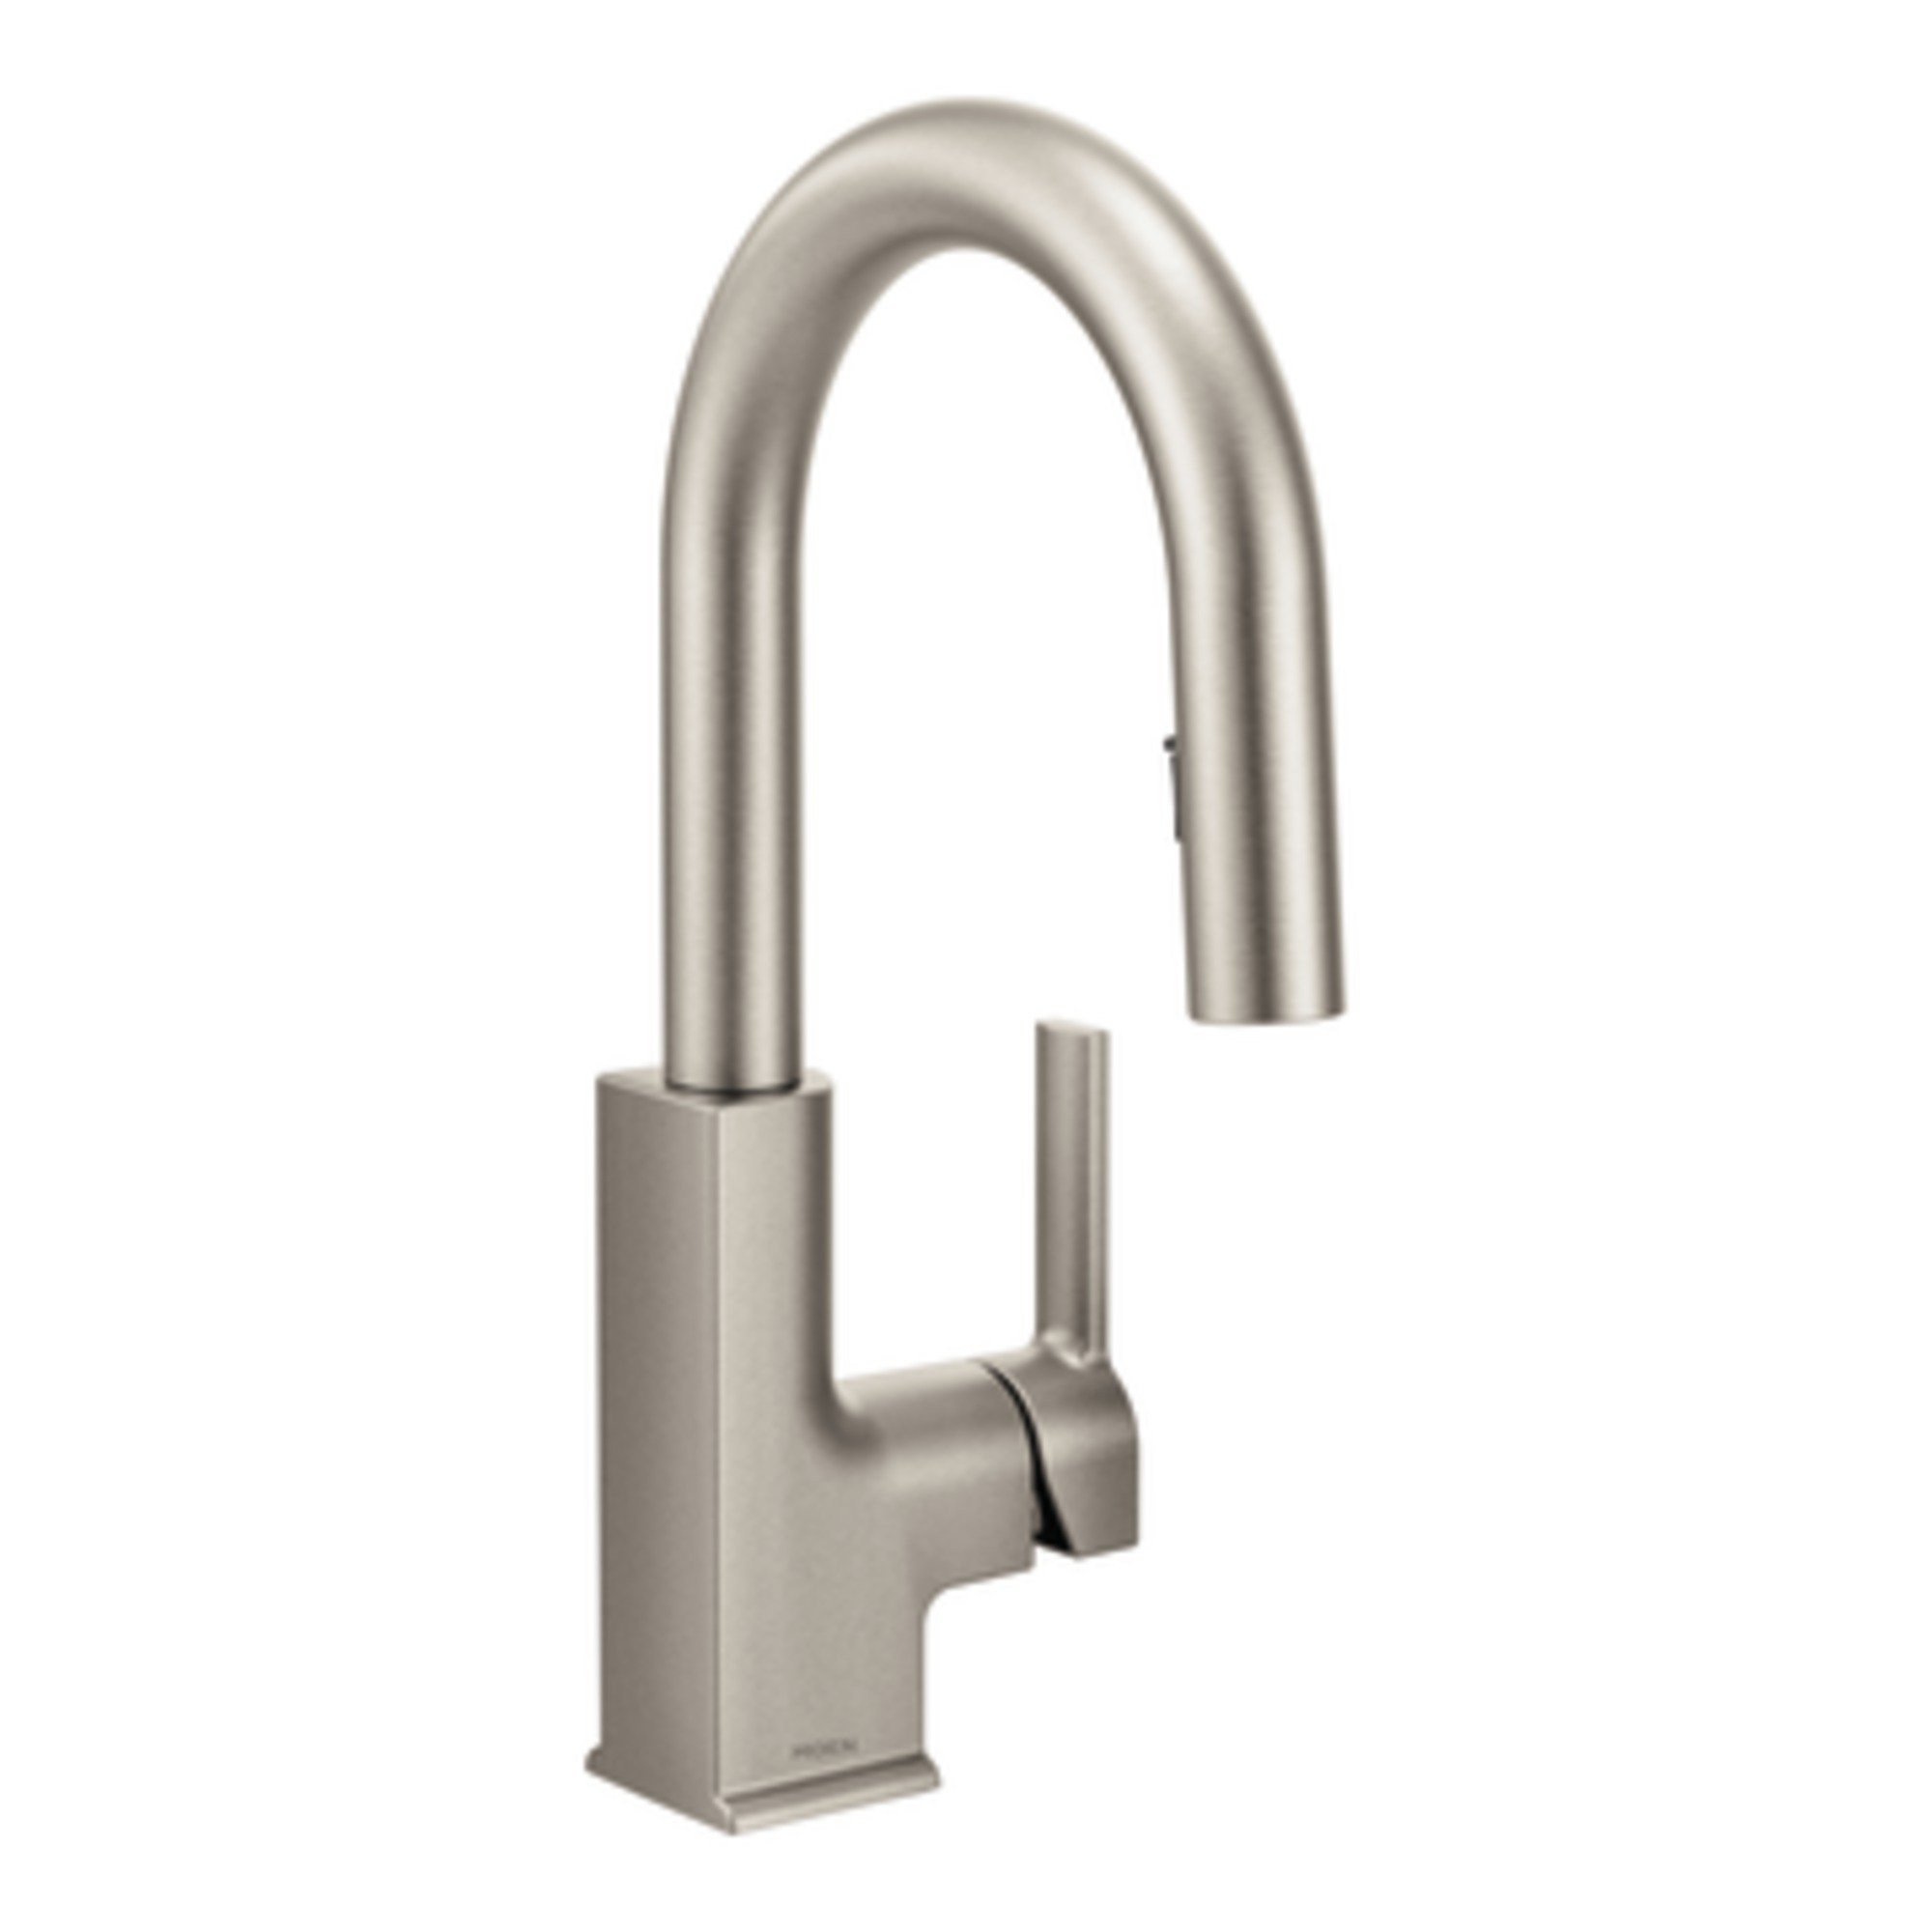 Moen S62308SRS STO One-Handle High Arc Pulldown Bar Faucet, Spot Resist Stainless